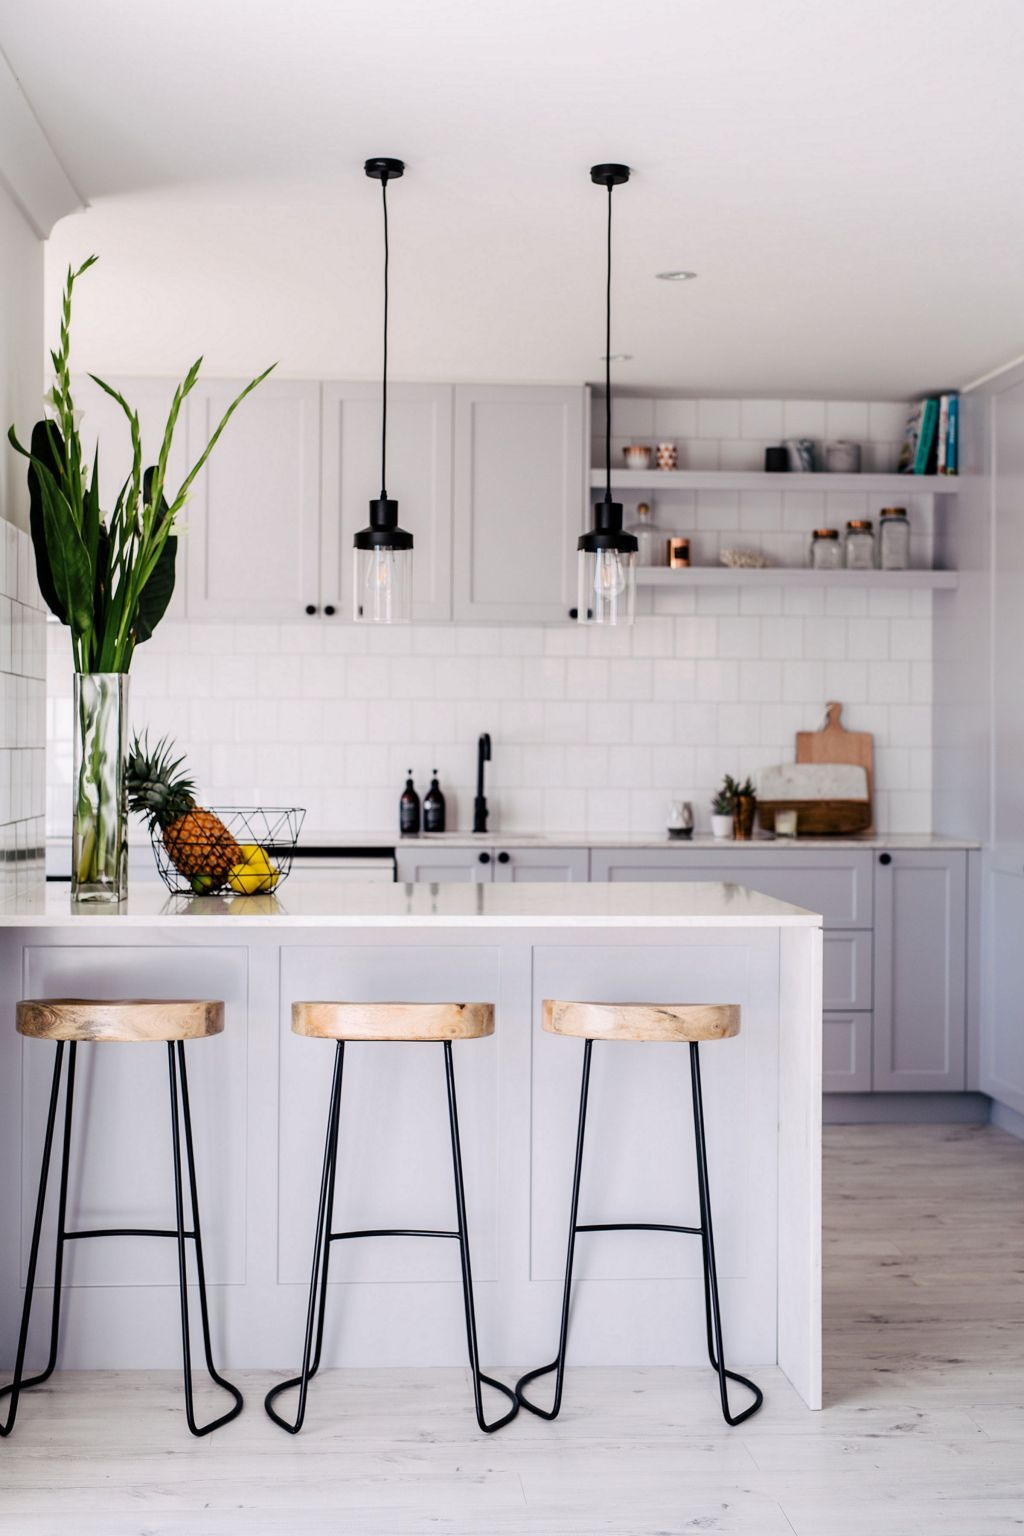 Awesome Minimalist Kitchen For Small Space In Your Home 0034 Small Modern Kitchens Small White Kitchens Small Space Kitchen